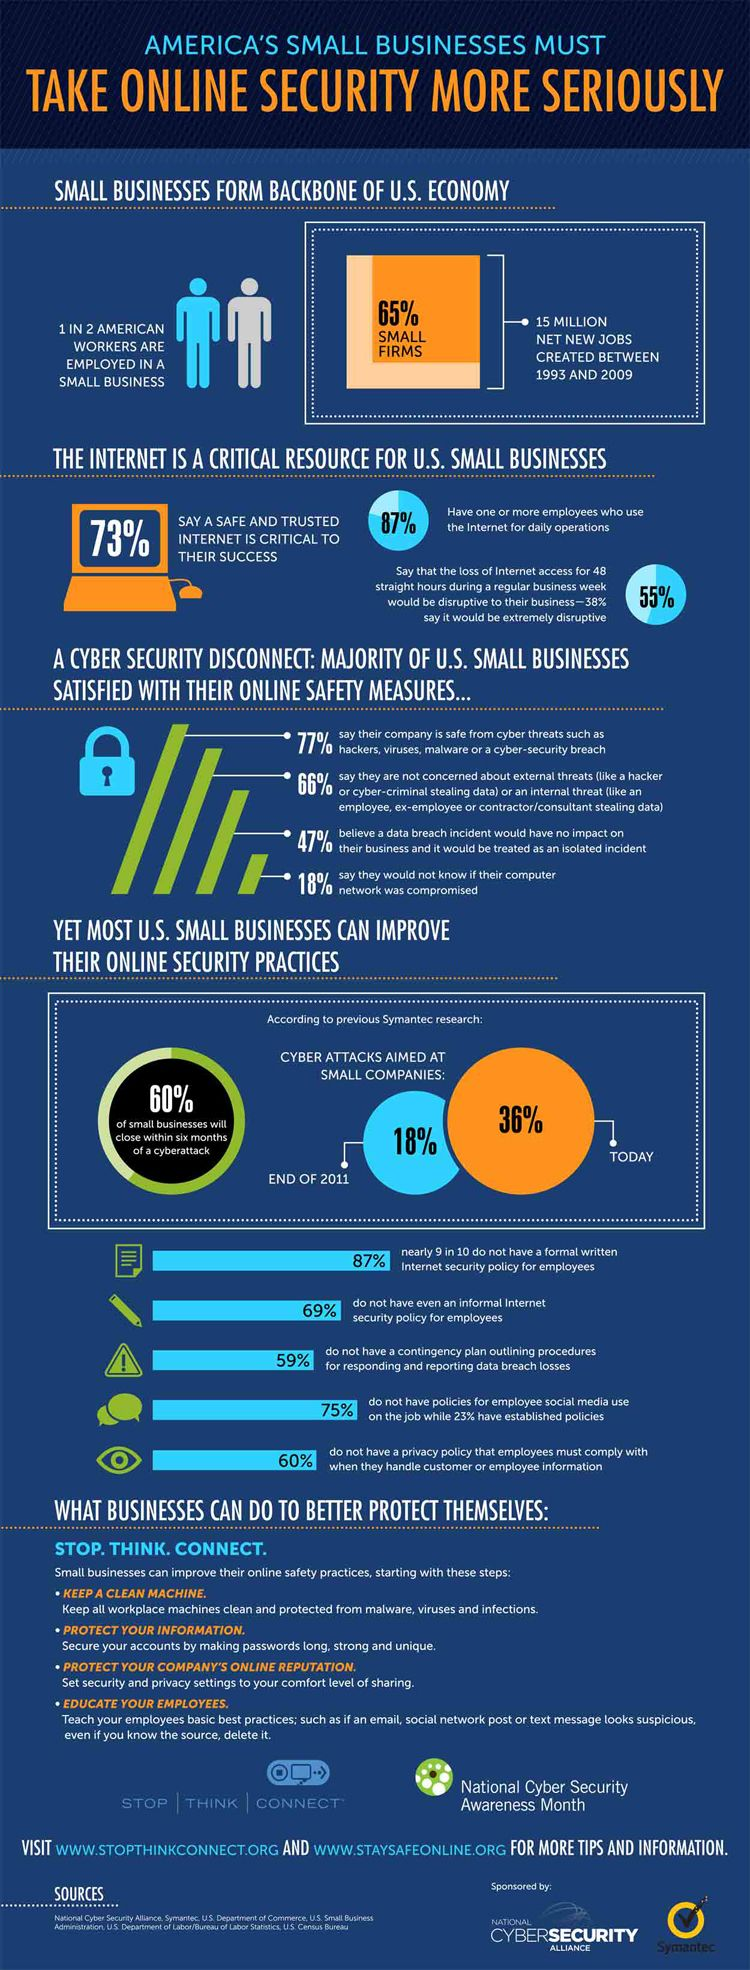 Small Business Online Security Infographic Staysafeonline Org Online Security Cyber Security Awareness Business Security